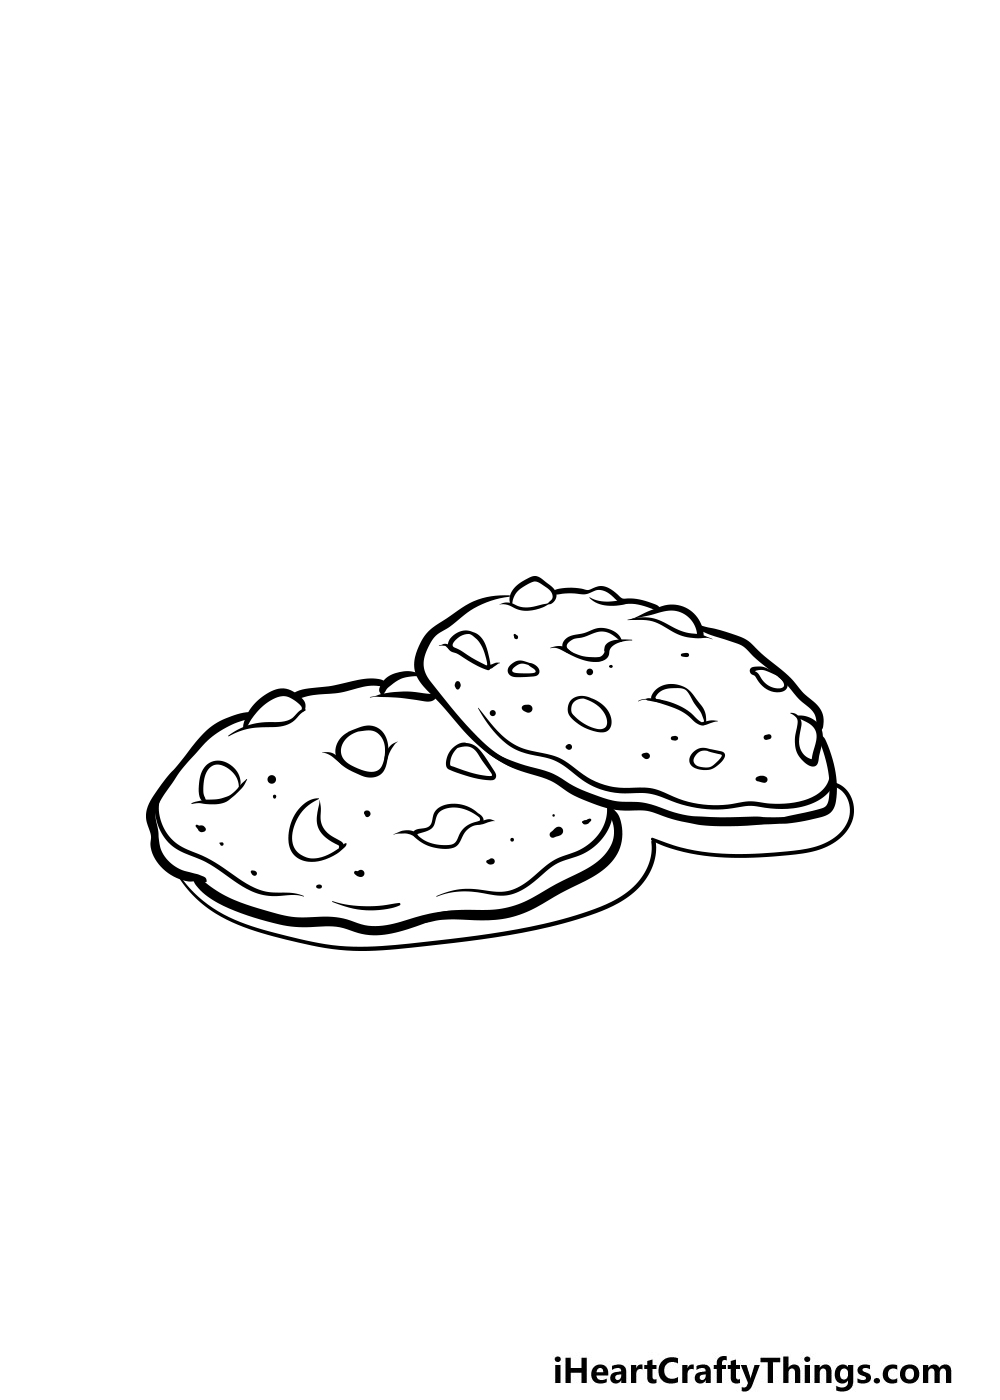 drawing a cookie step 7